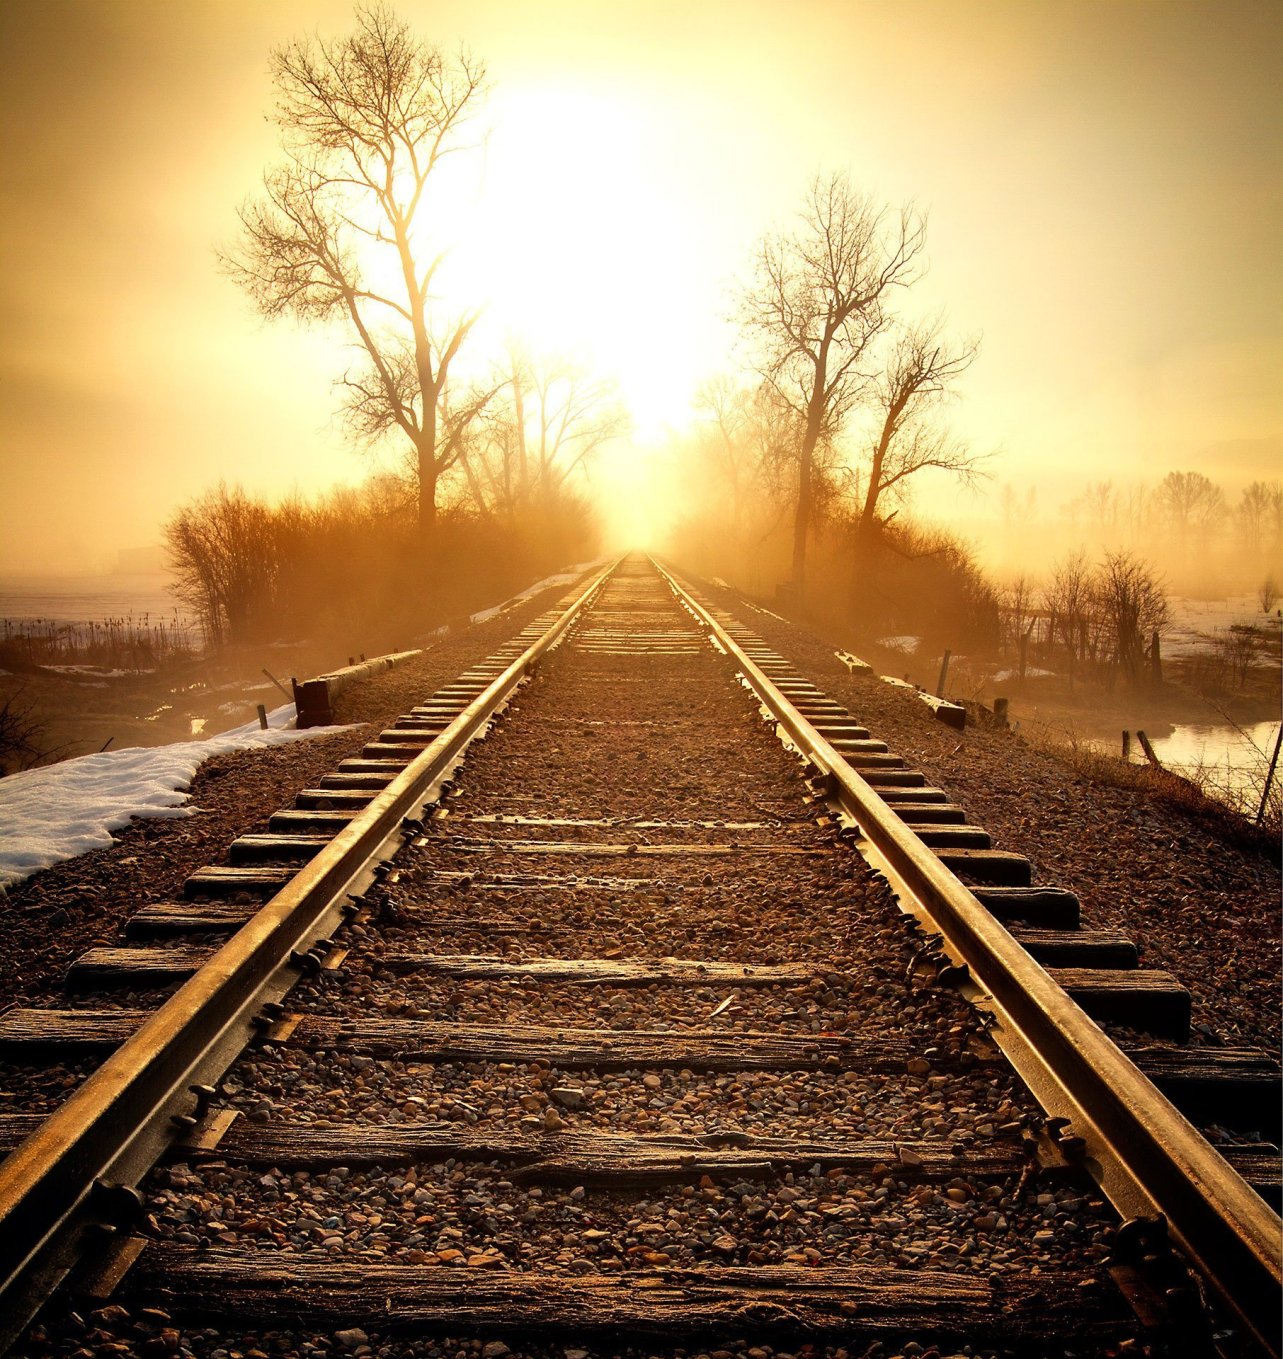 Railroad tracks into the early morning sun